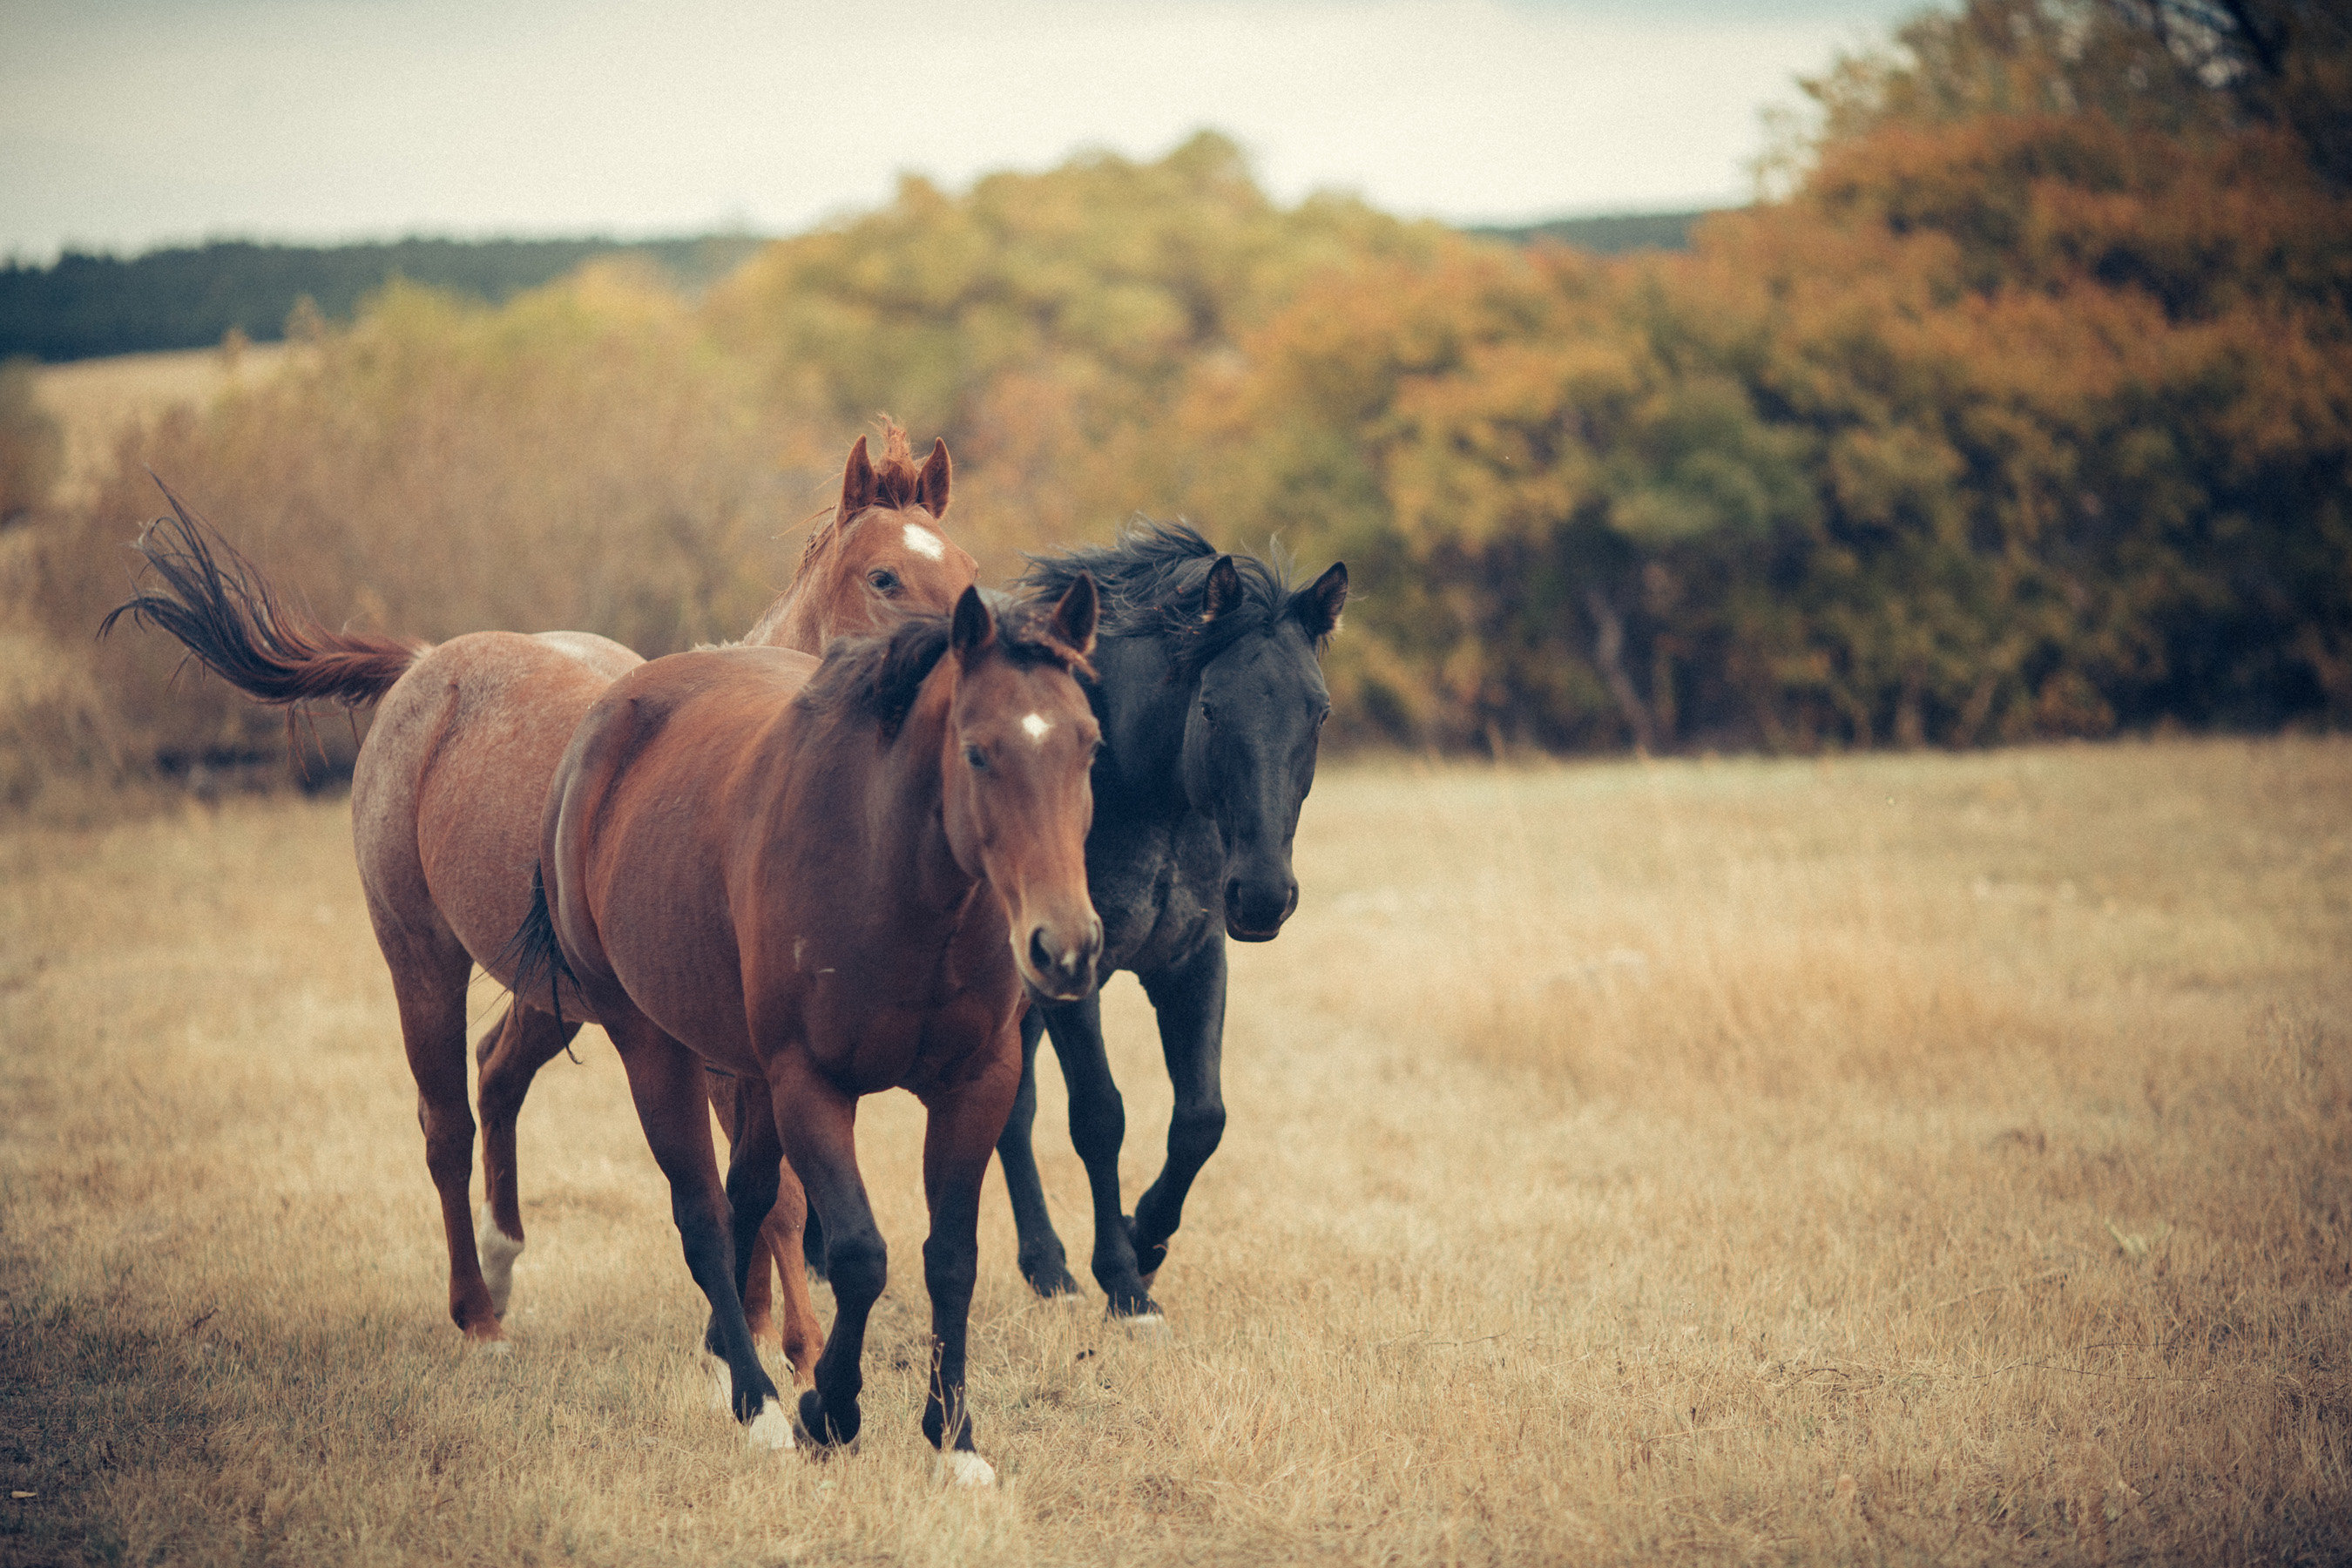 Not ready to foster or adopt just yet? Visit MyRightHorse.org and share adoptable horses with your community to help connect the #righthorse to the right person and bring awareness to equine adoption.